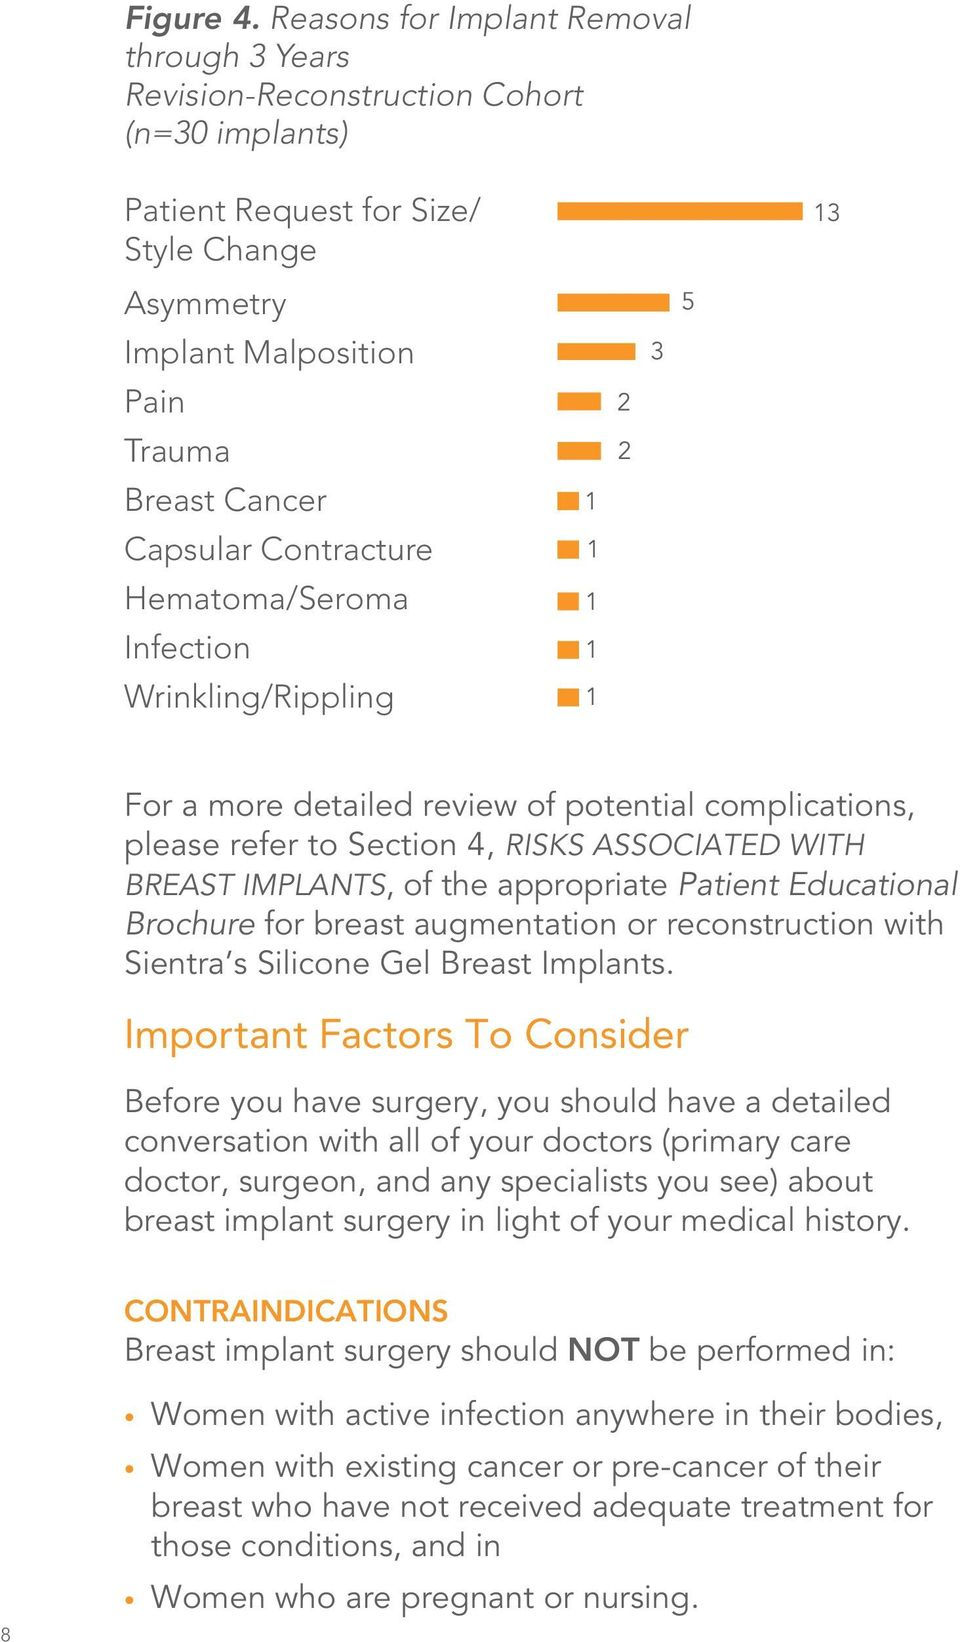 Contracture Hematoma/Seroma Infection Wrinkling/Rippling 2 2 3 5 3 For a more detailed review of potential complications, please refer to Section 4, Risks Associated With Breast Implants, of the